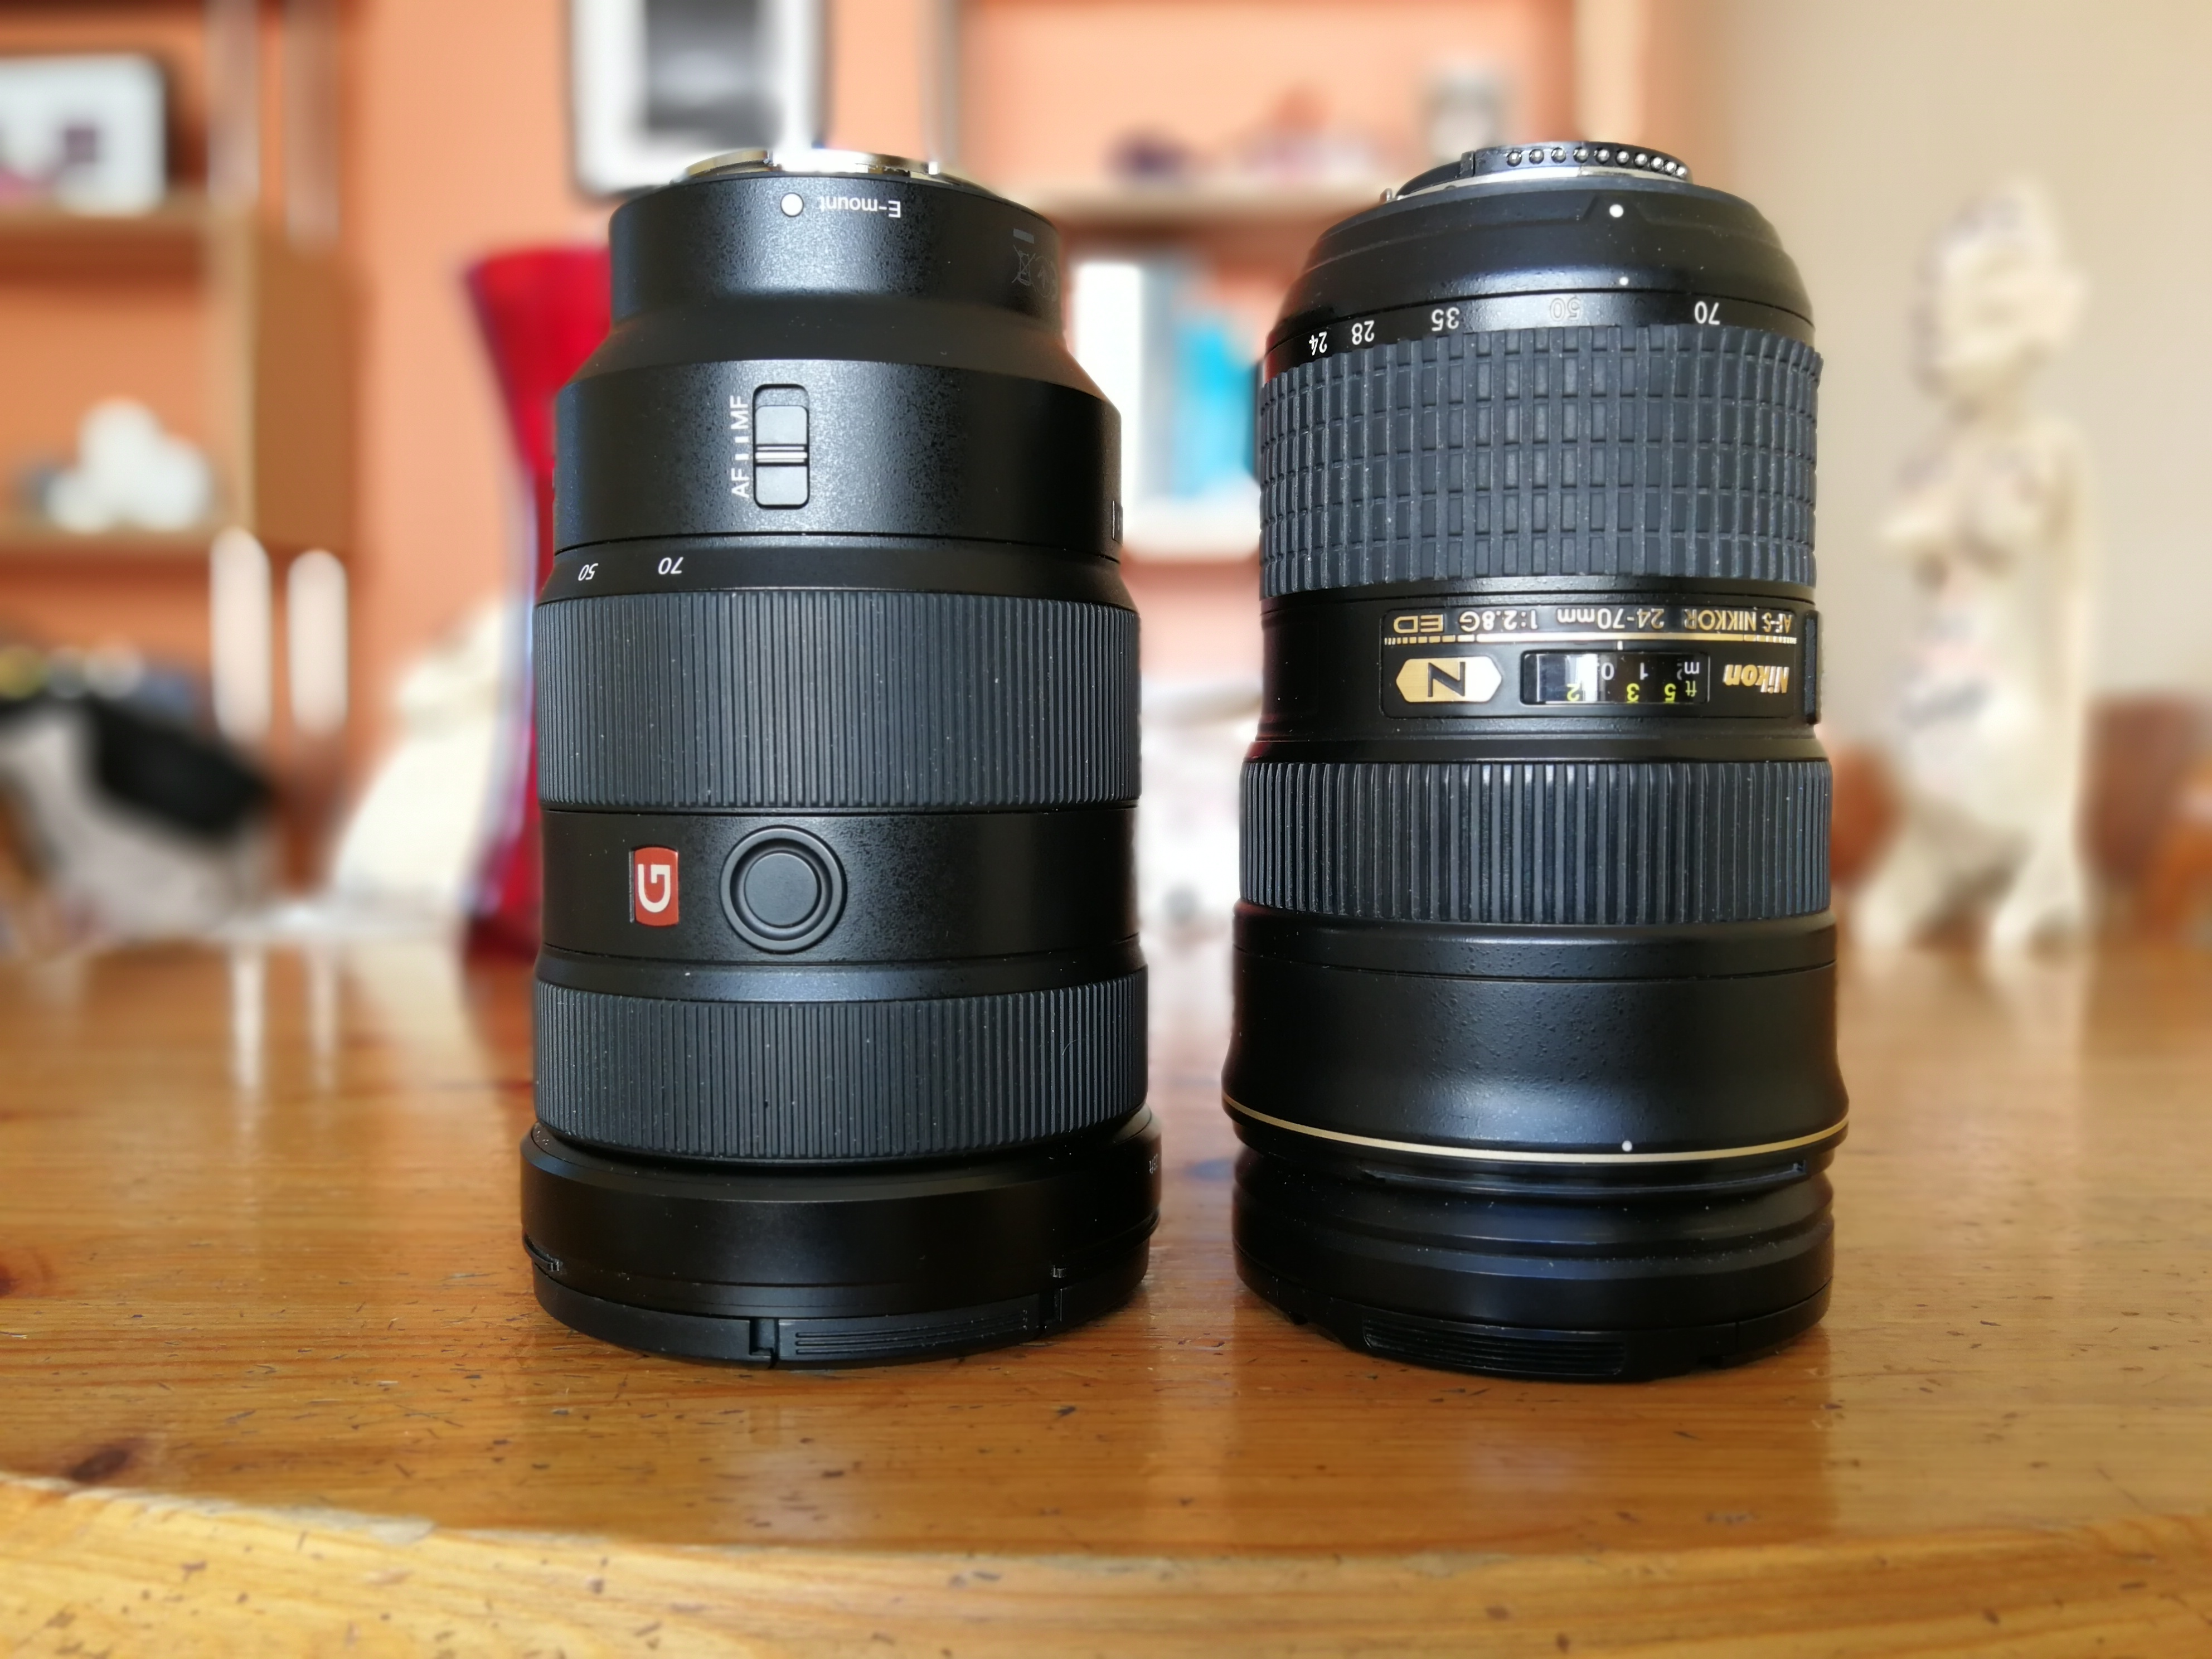 Sony and Nikon 24-70 f2.8 lenses